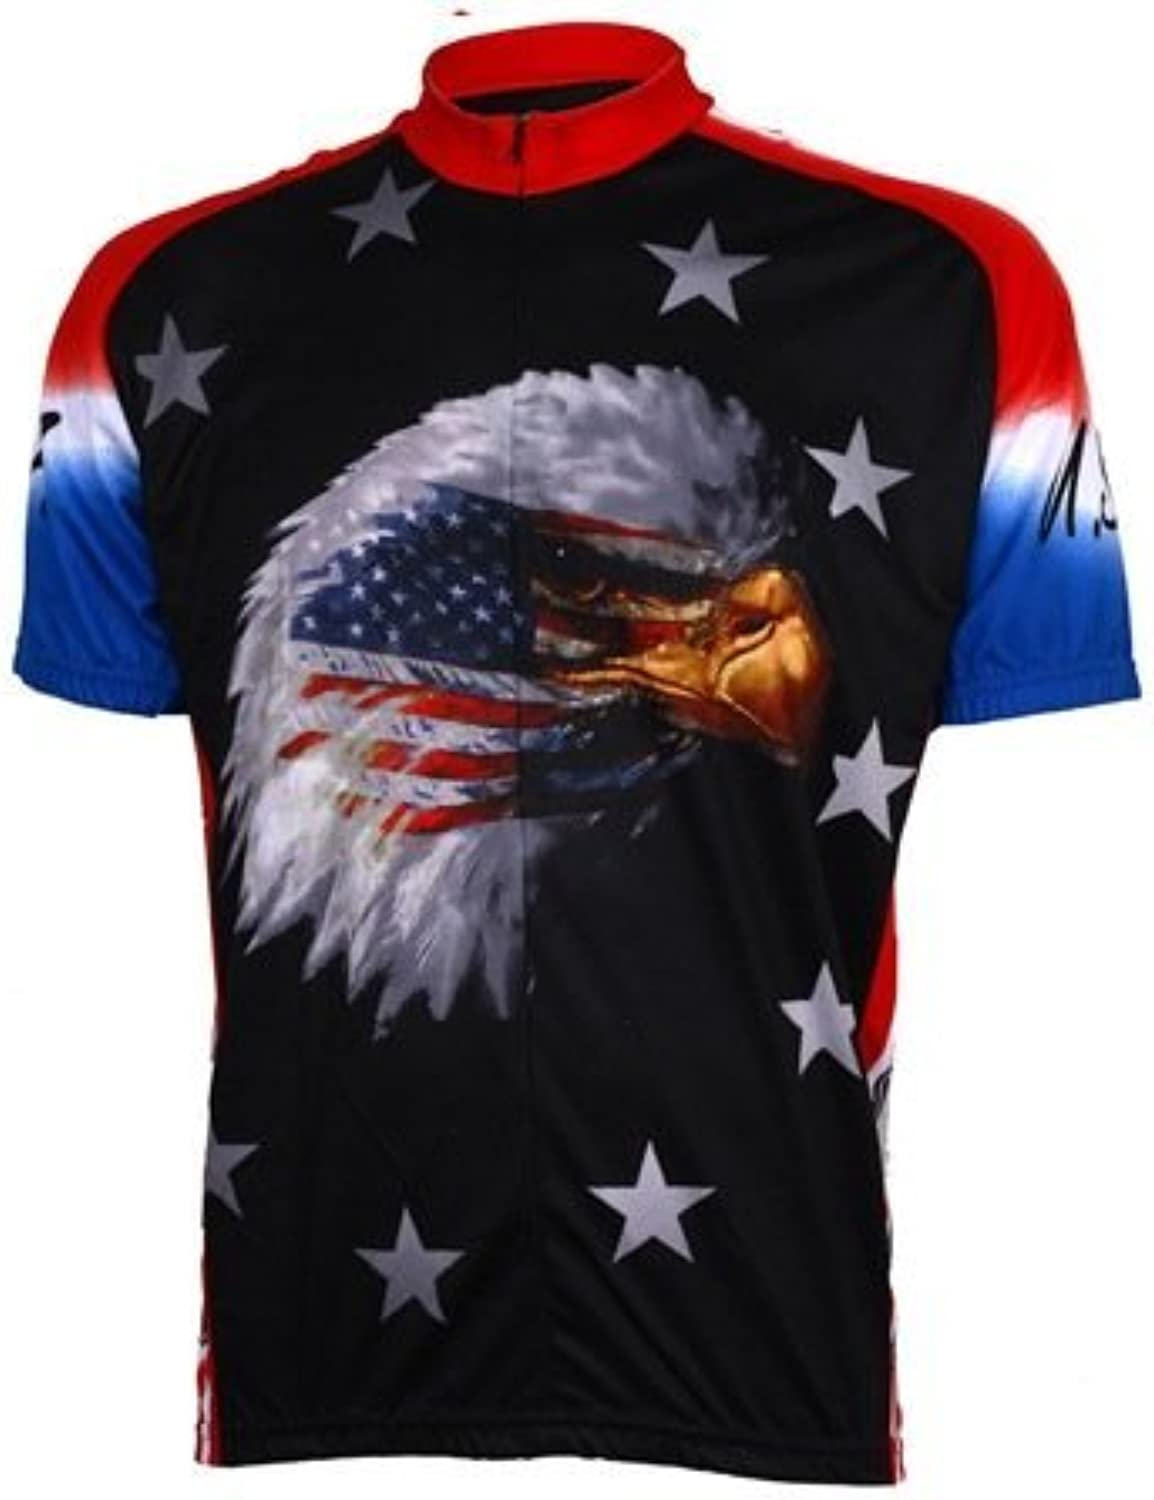 World Jerseys Men's American Eagle Cycling Jersey, American Eagle, Large by World Jerseys